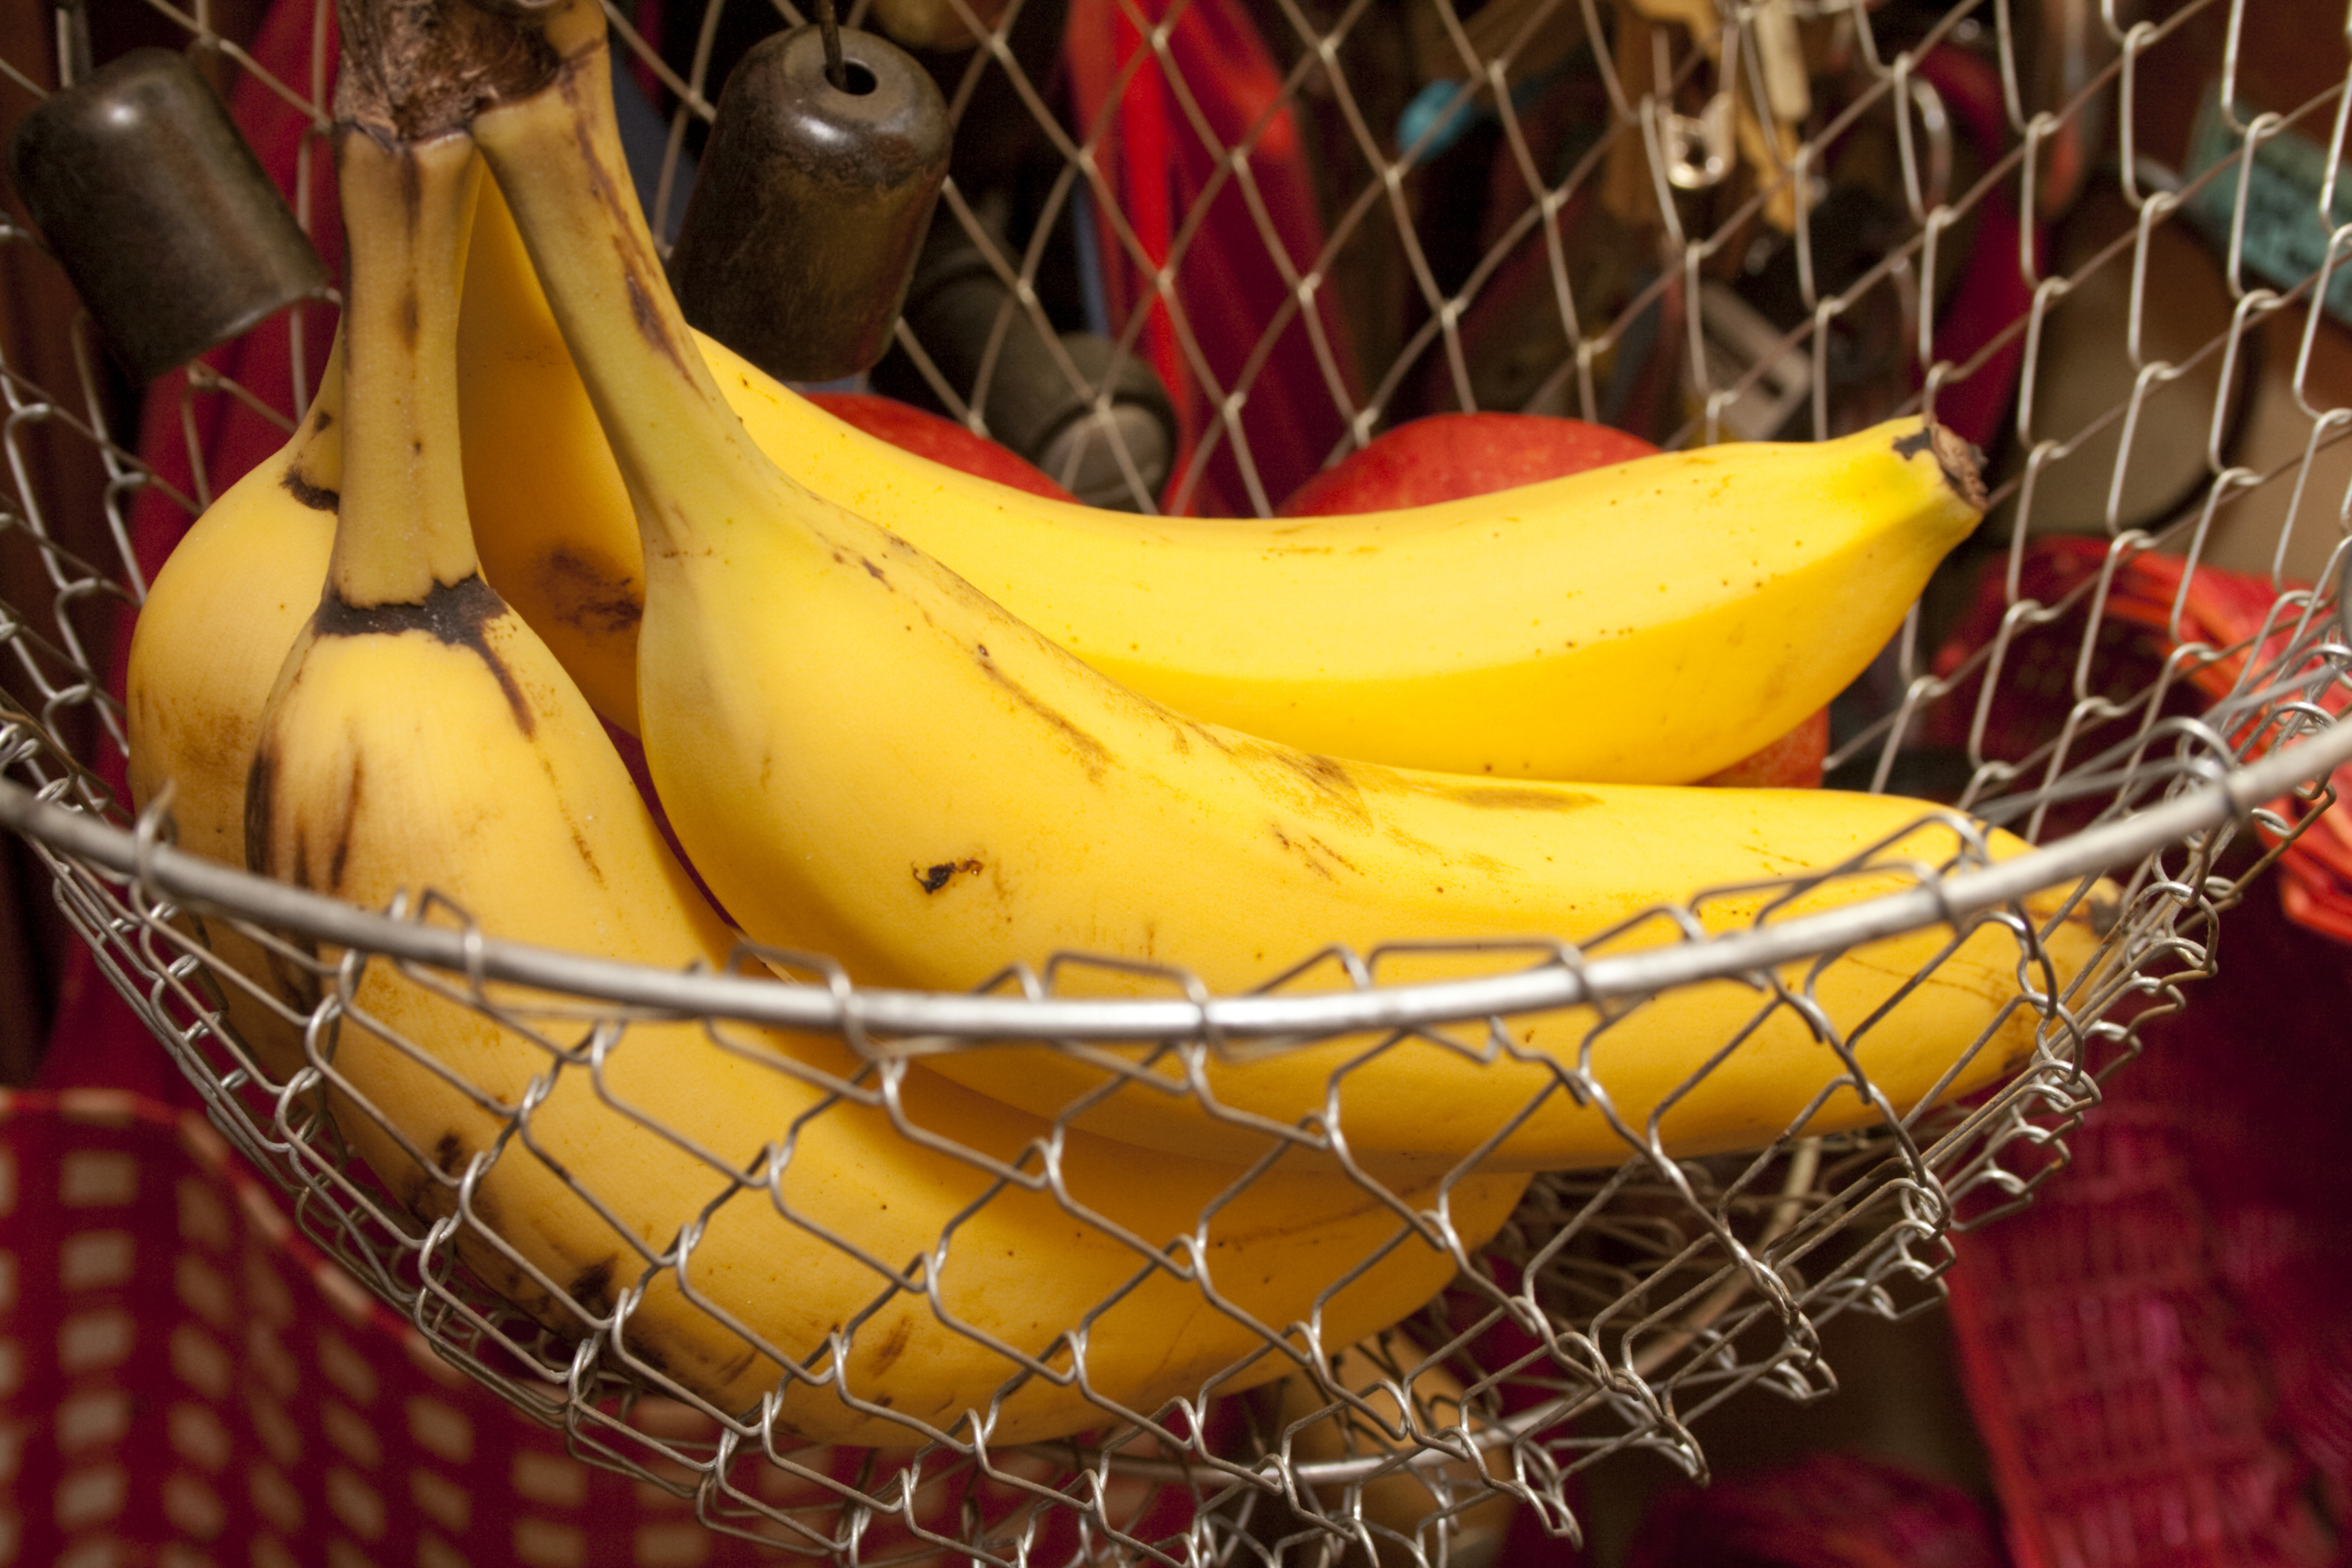 Yellow bananas in a kitchen basket